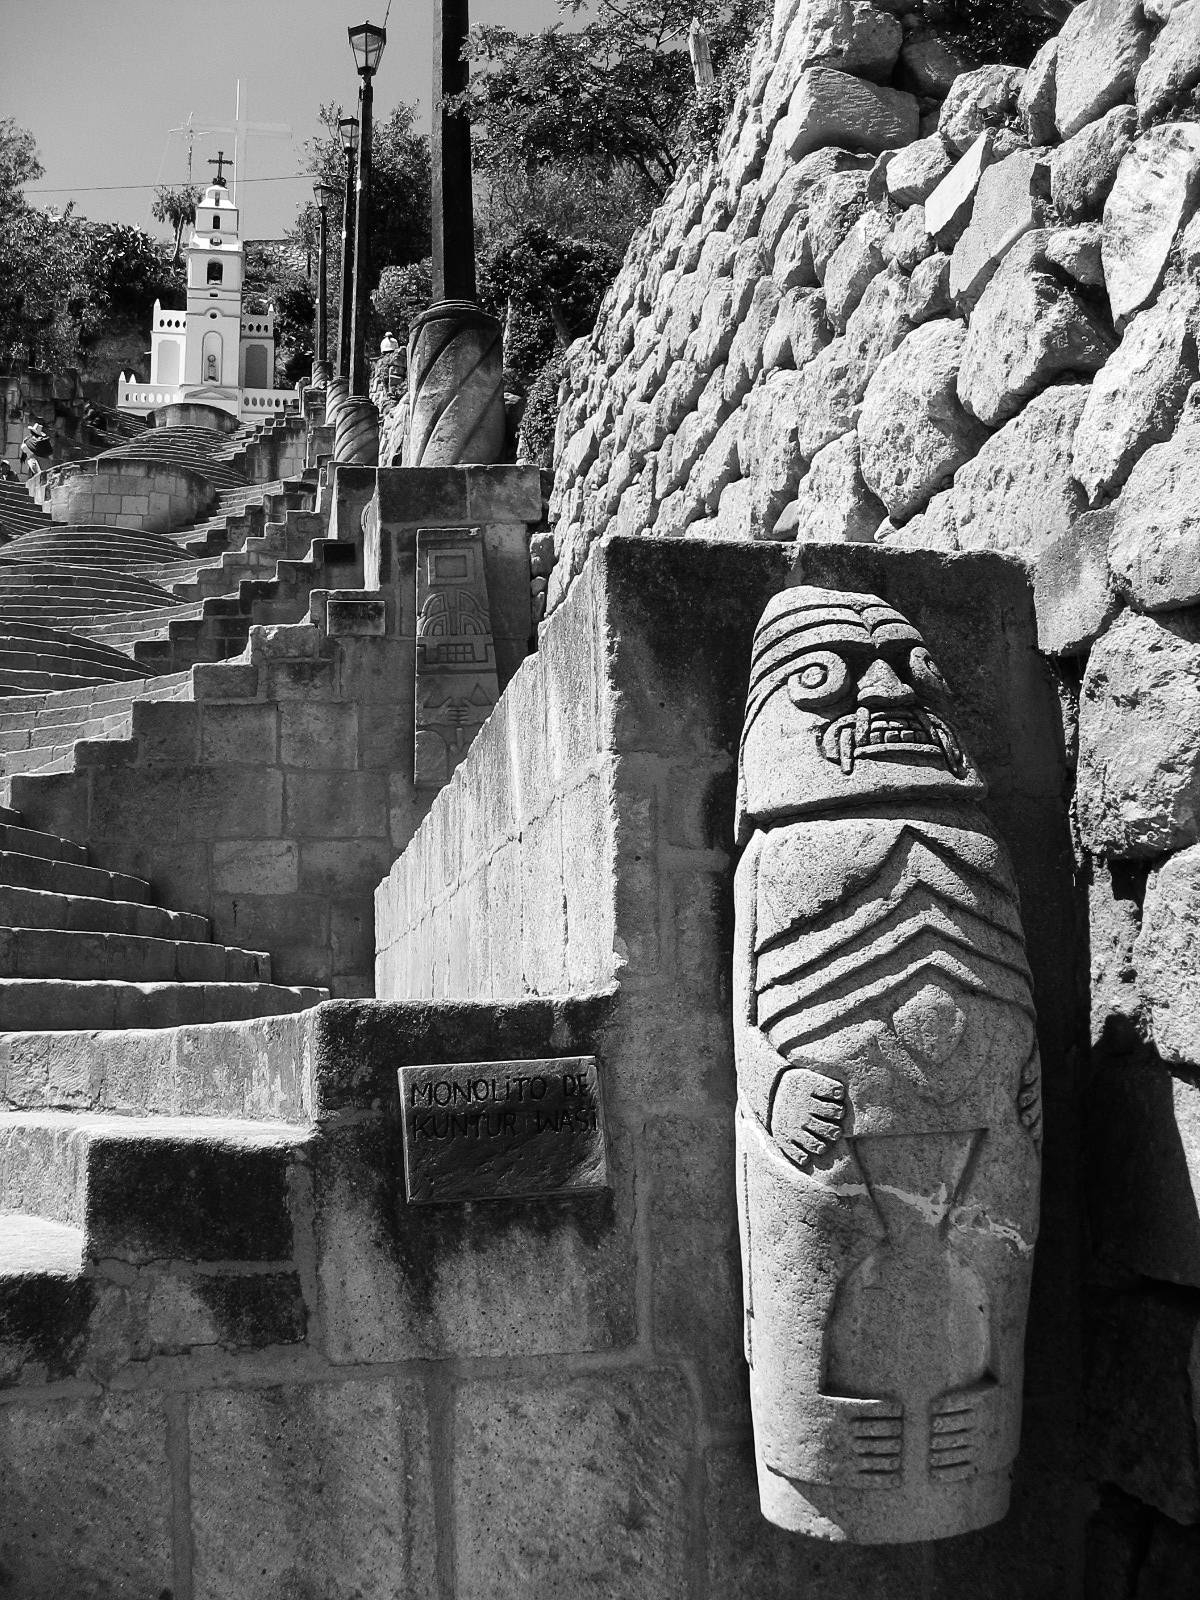 cajamarca_town-6061-stairs-to-apolonia-hill-inca-style-carving.jpg